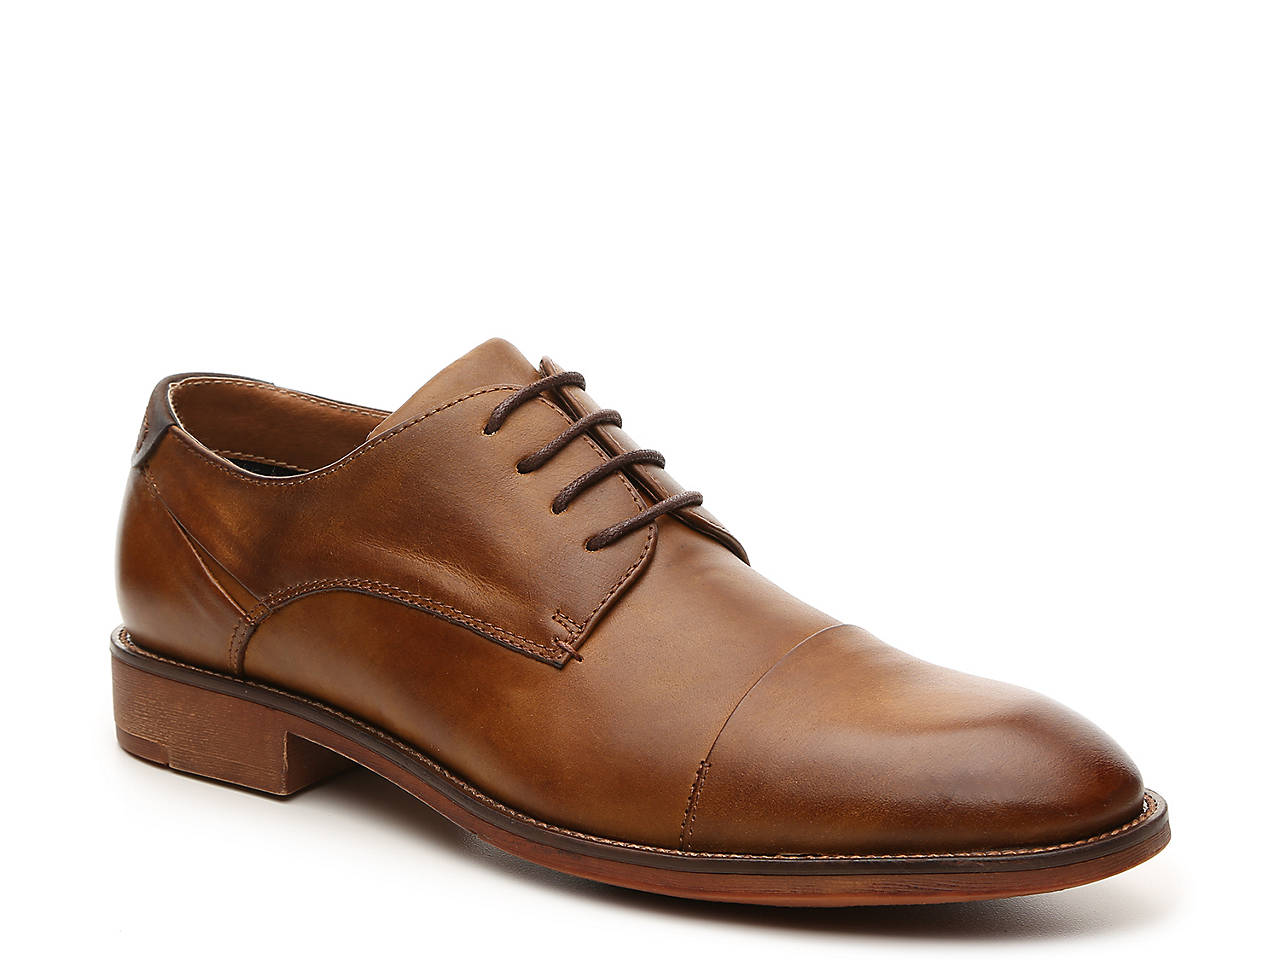 Mens Steve Madden Dressed Oxfords Shoes Brown Leather MFC46416